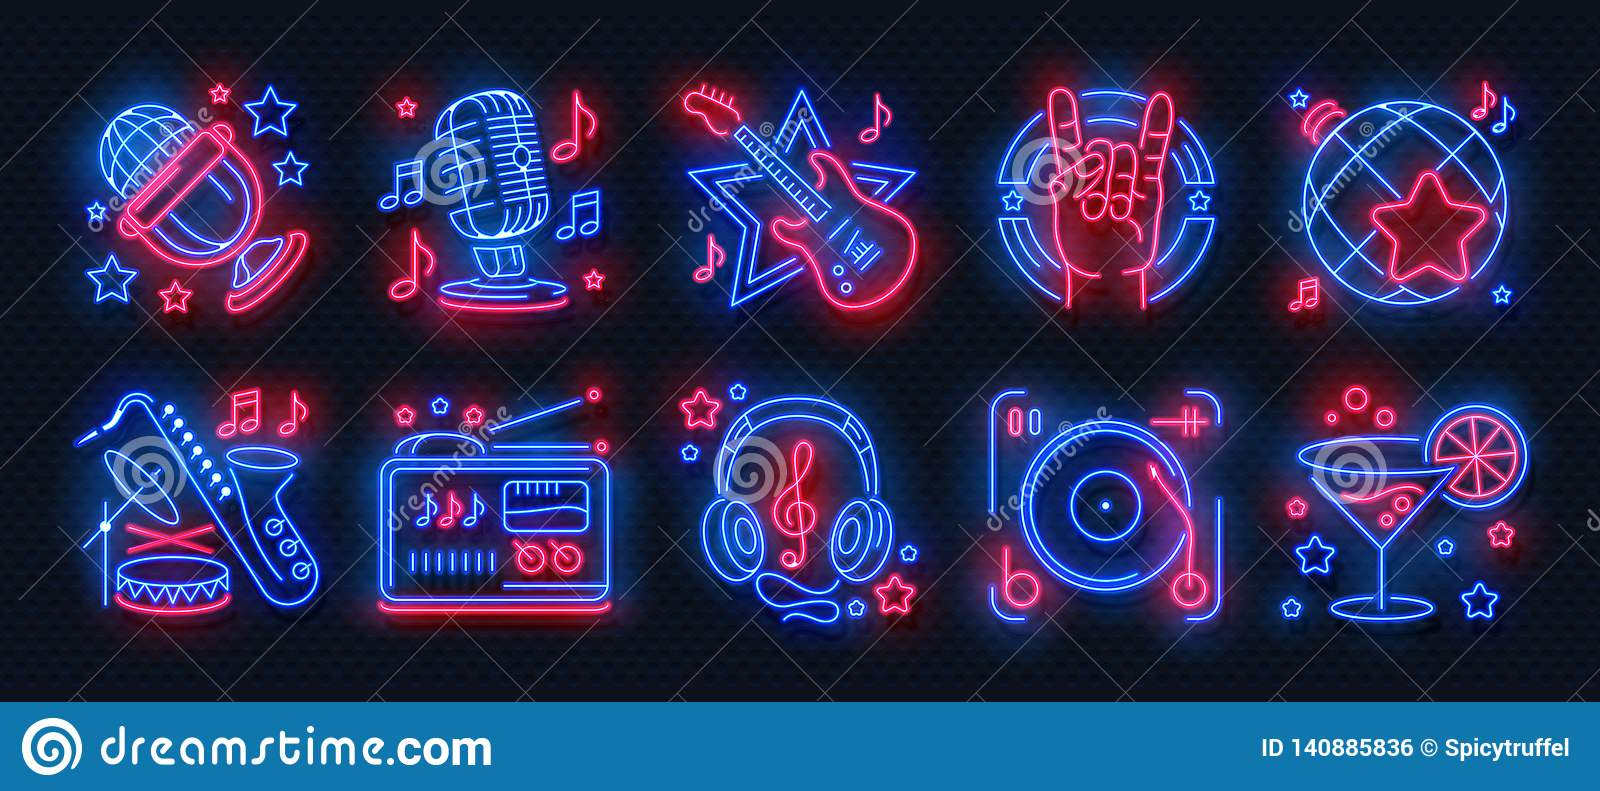 Neon party icons. Dance music karaoke light signs, glowing concert banner, rock bar disco poster. Vector retro night